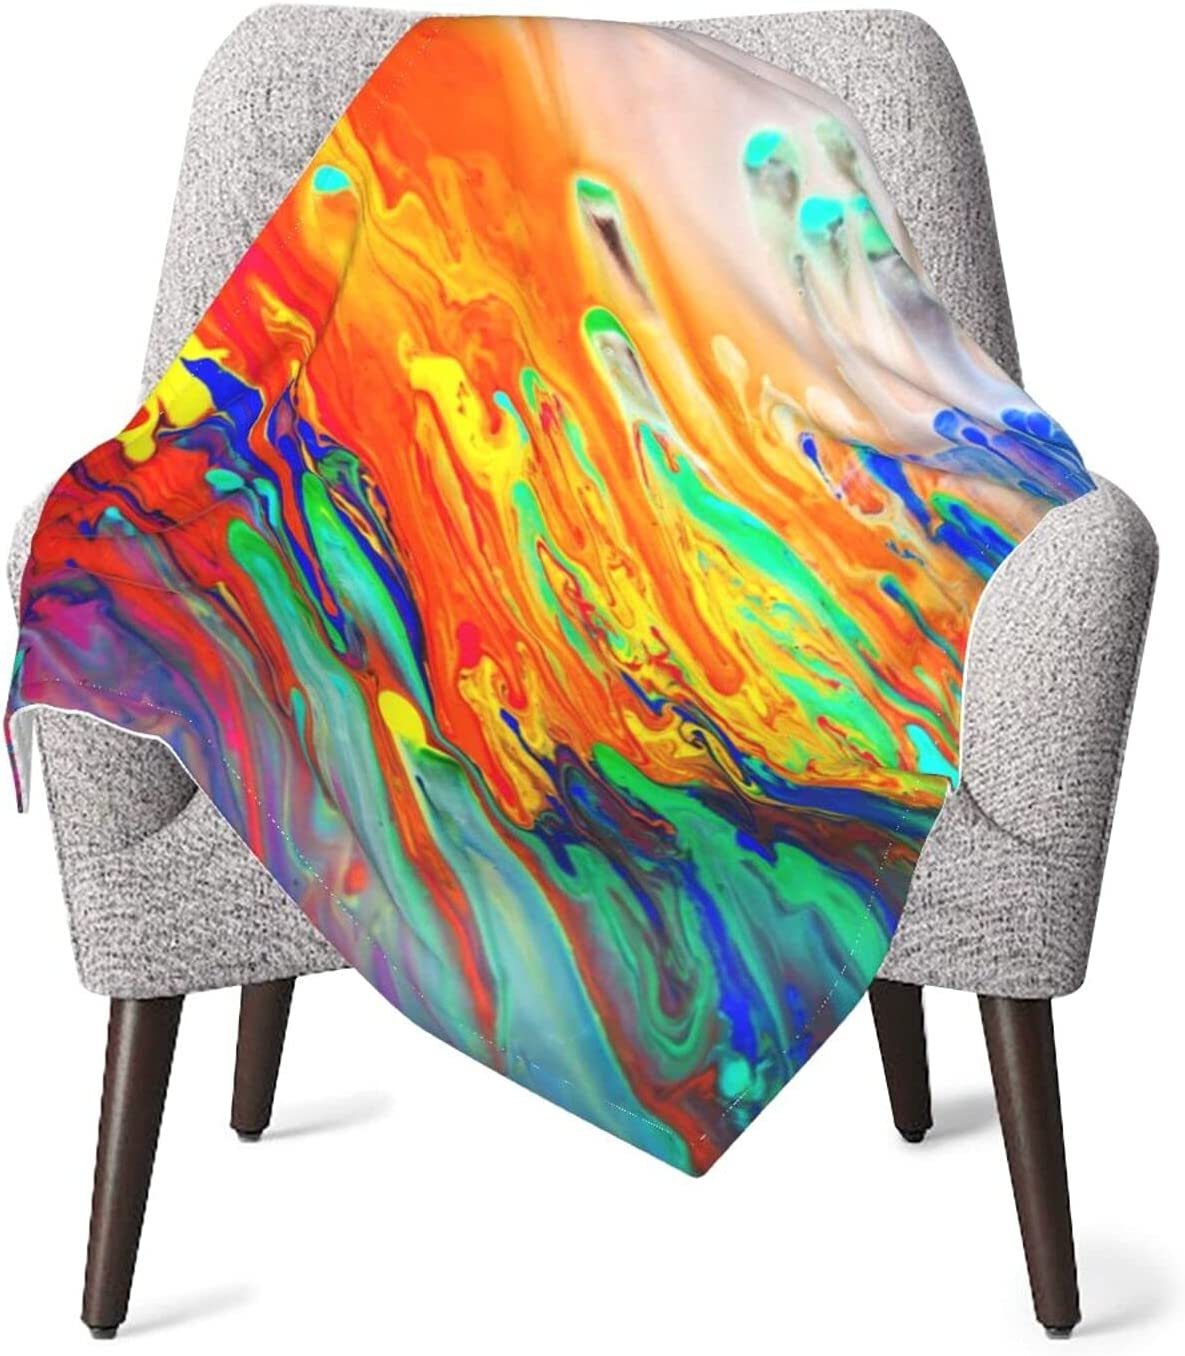 JZDACH half Baby Essentials Throw and Over item handling Wate Receiving Colorful Tie Dye